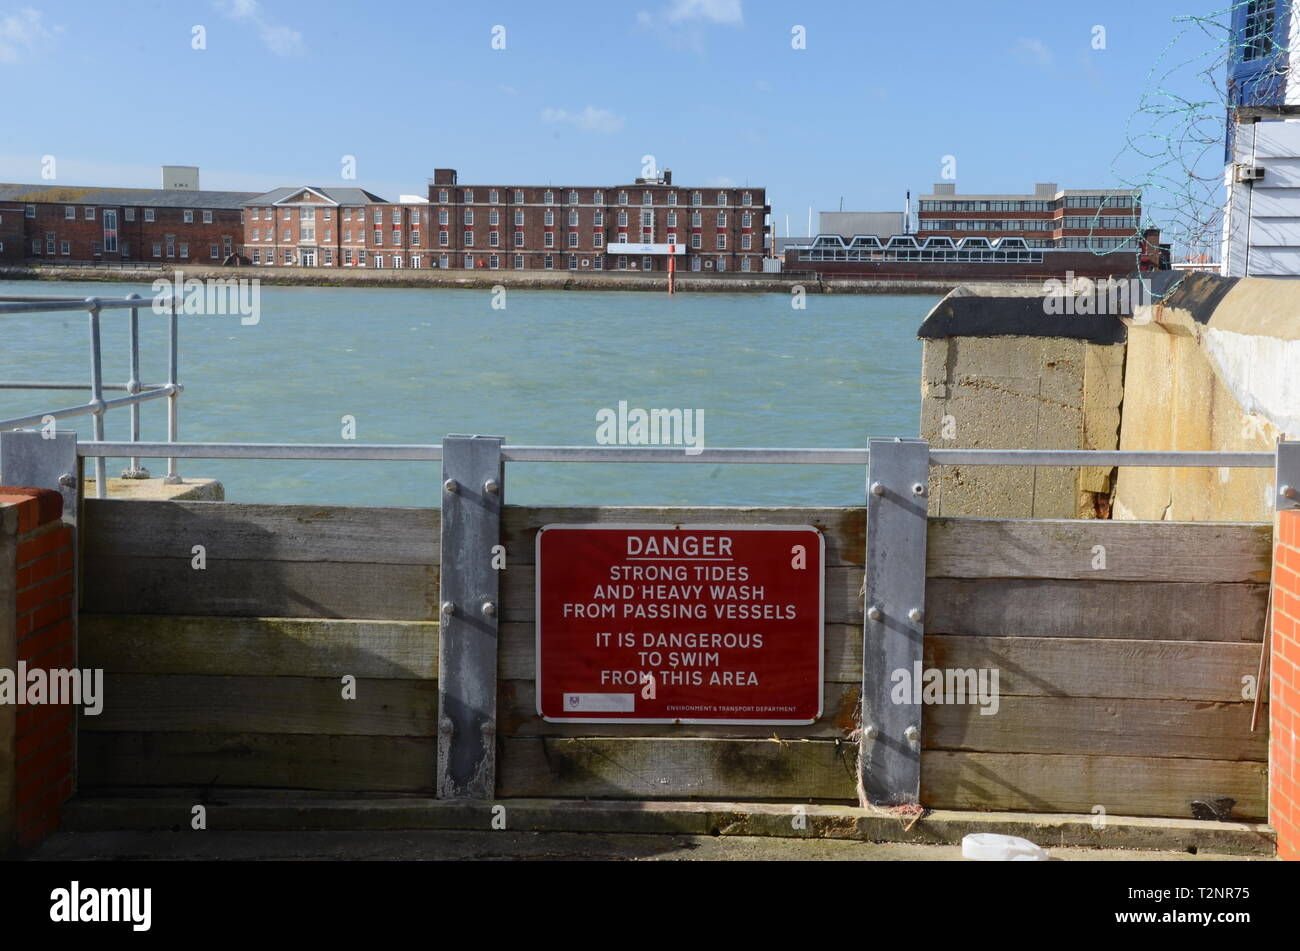 Danger, strong tides, fast moving water and heavy sea Stock Photo